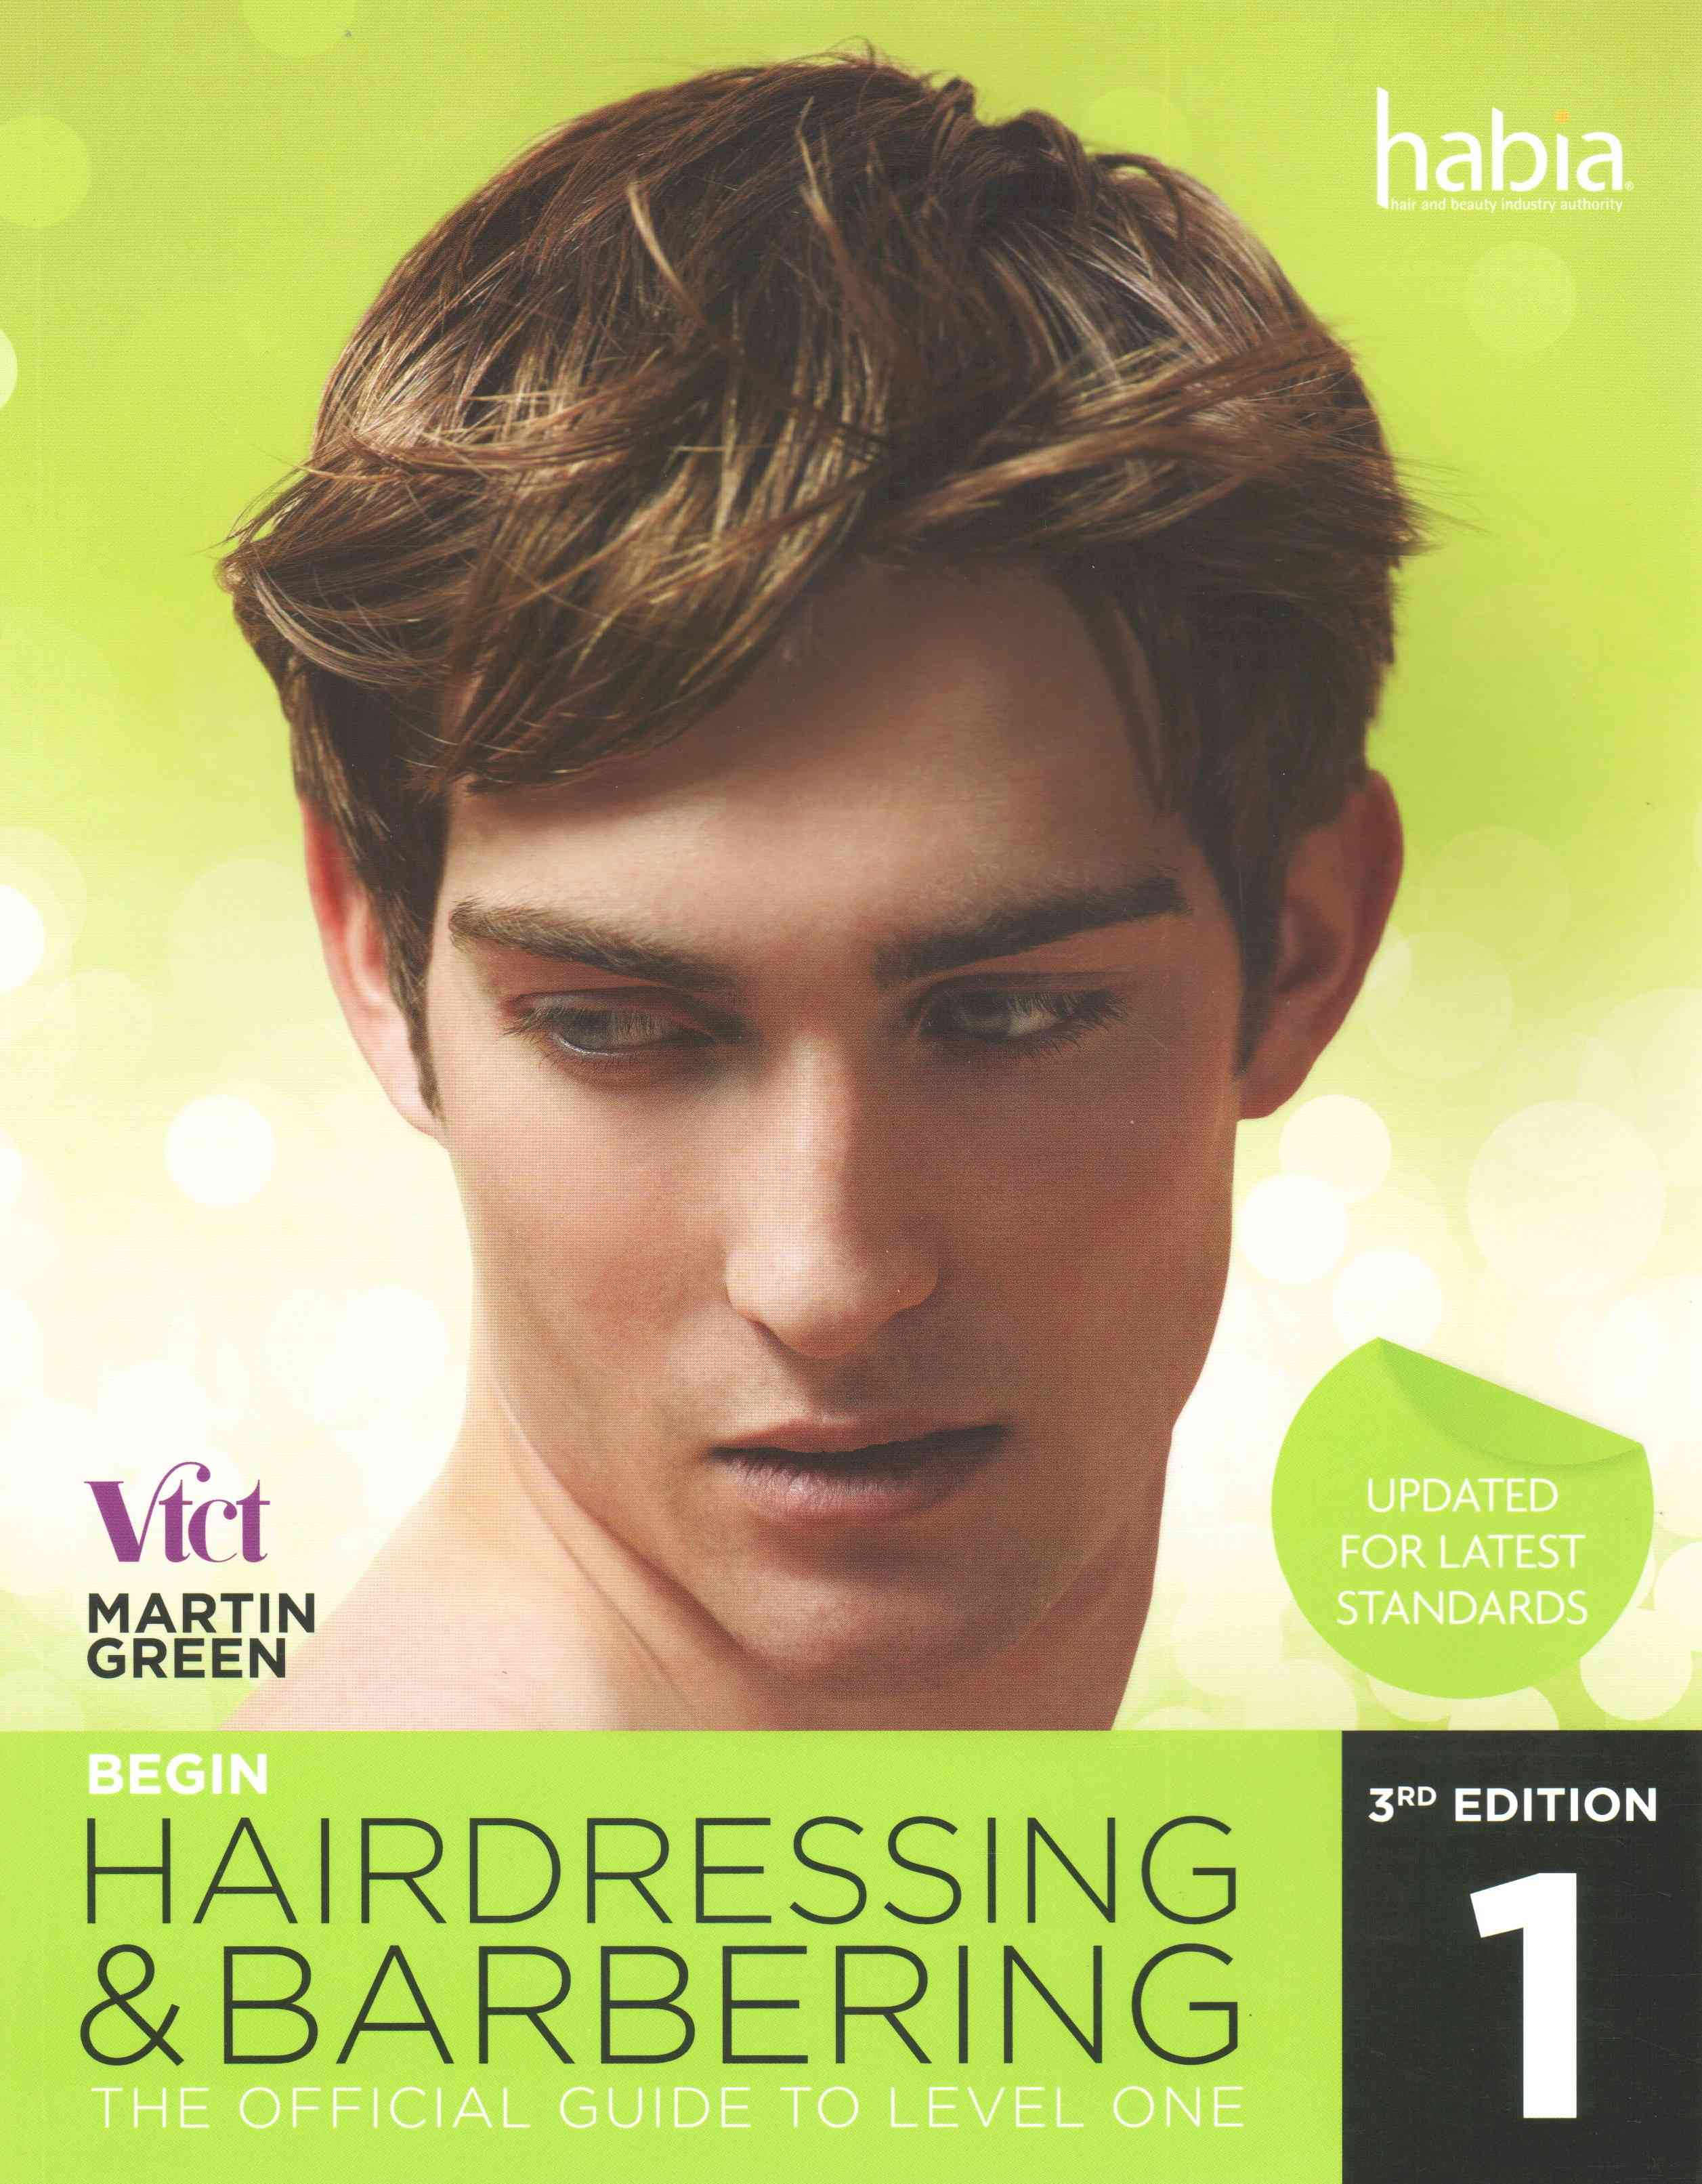 Begin hairdressing and Barbering 3rd edition by Martin Green